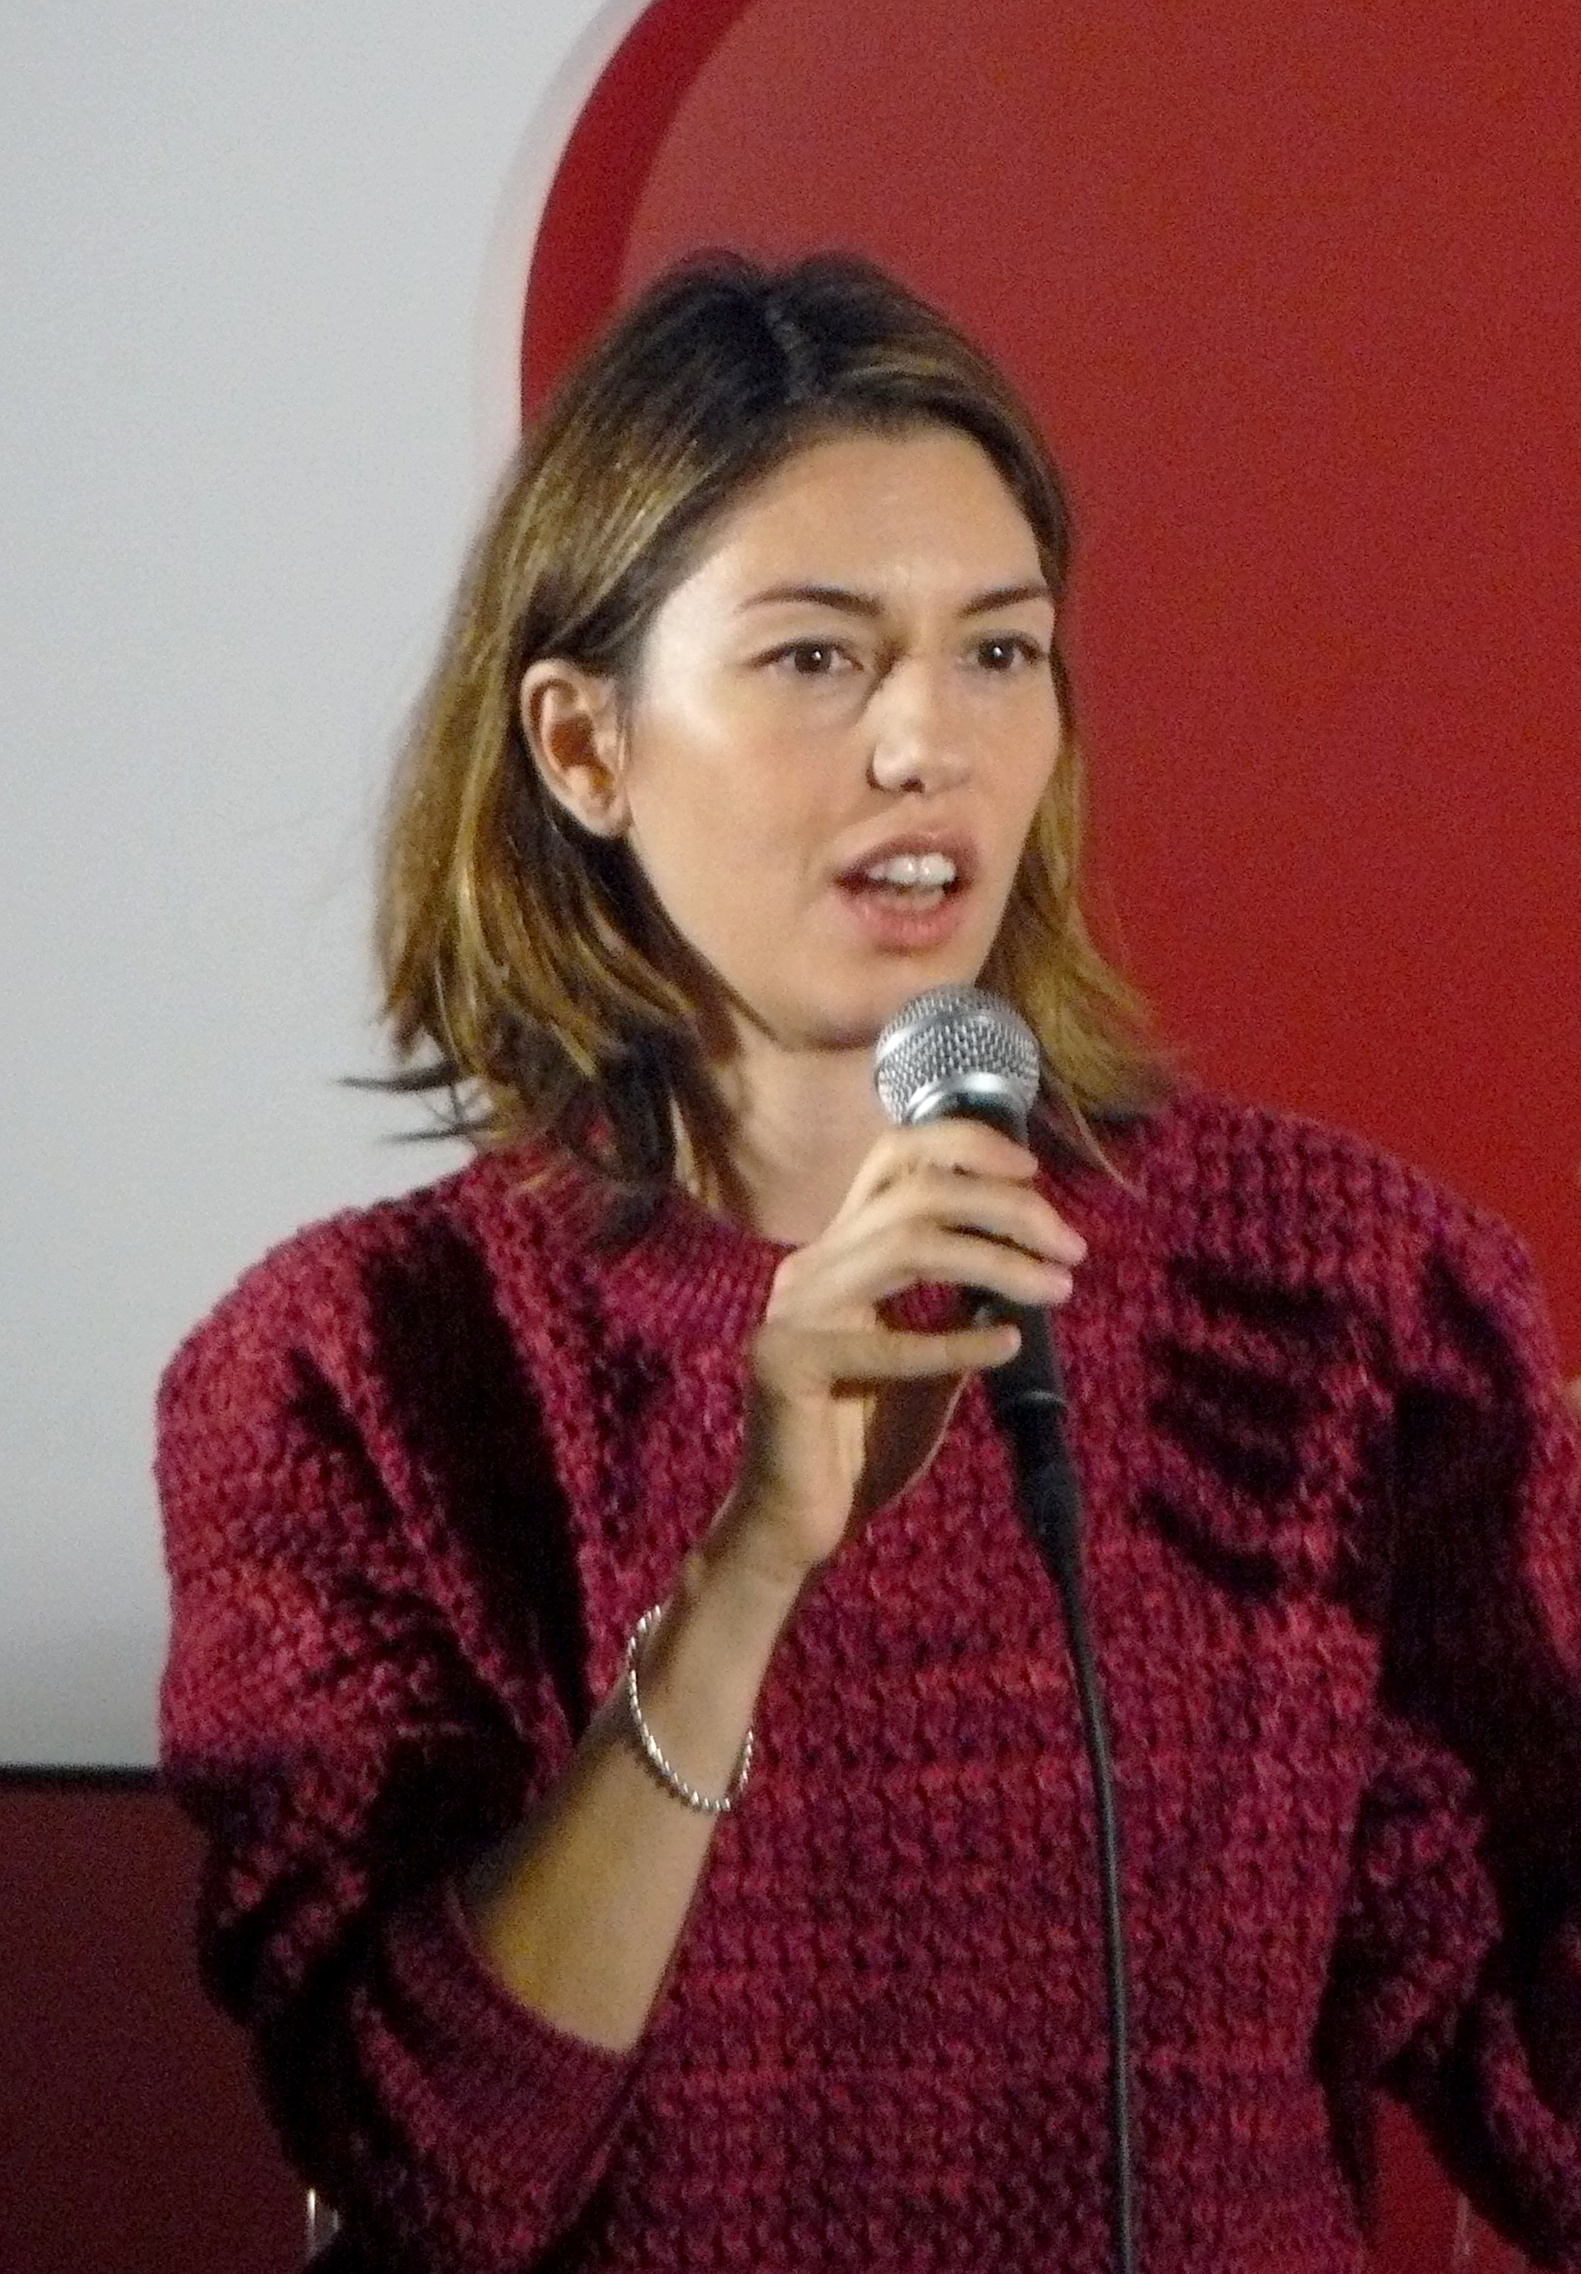 File:Sofia Coppola 2010 b.jpg - Wikimedia Commons